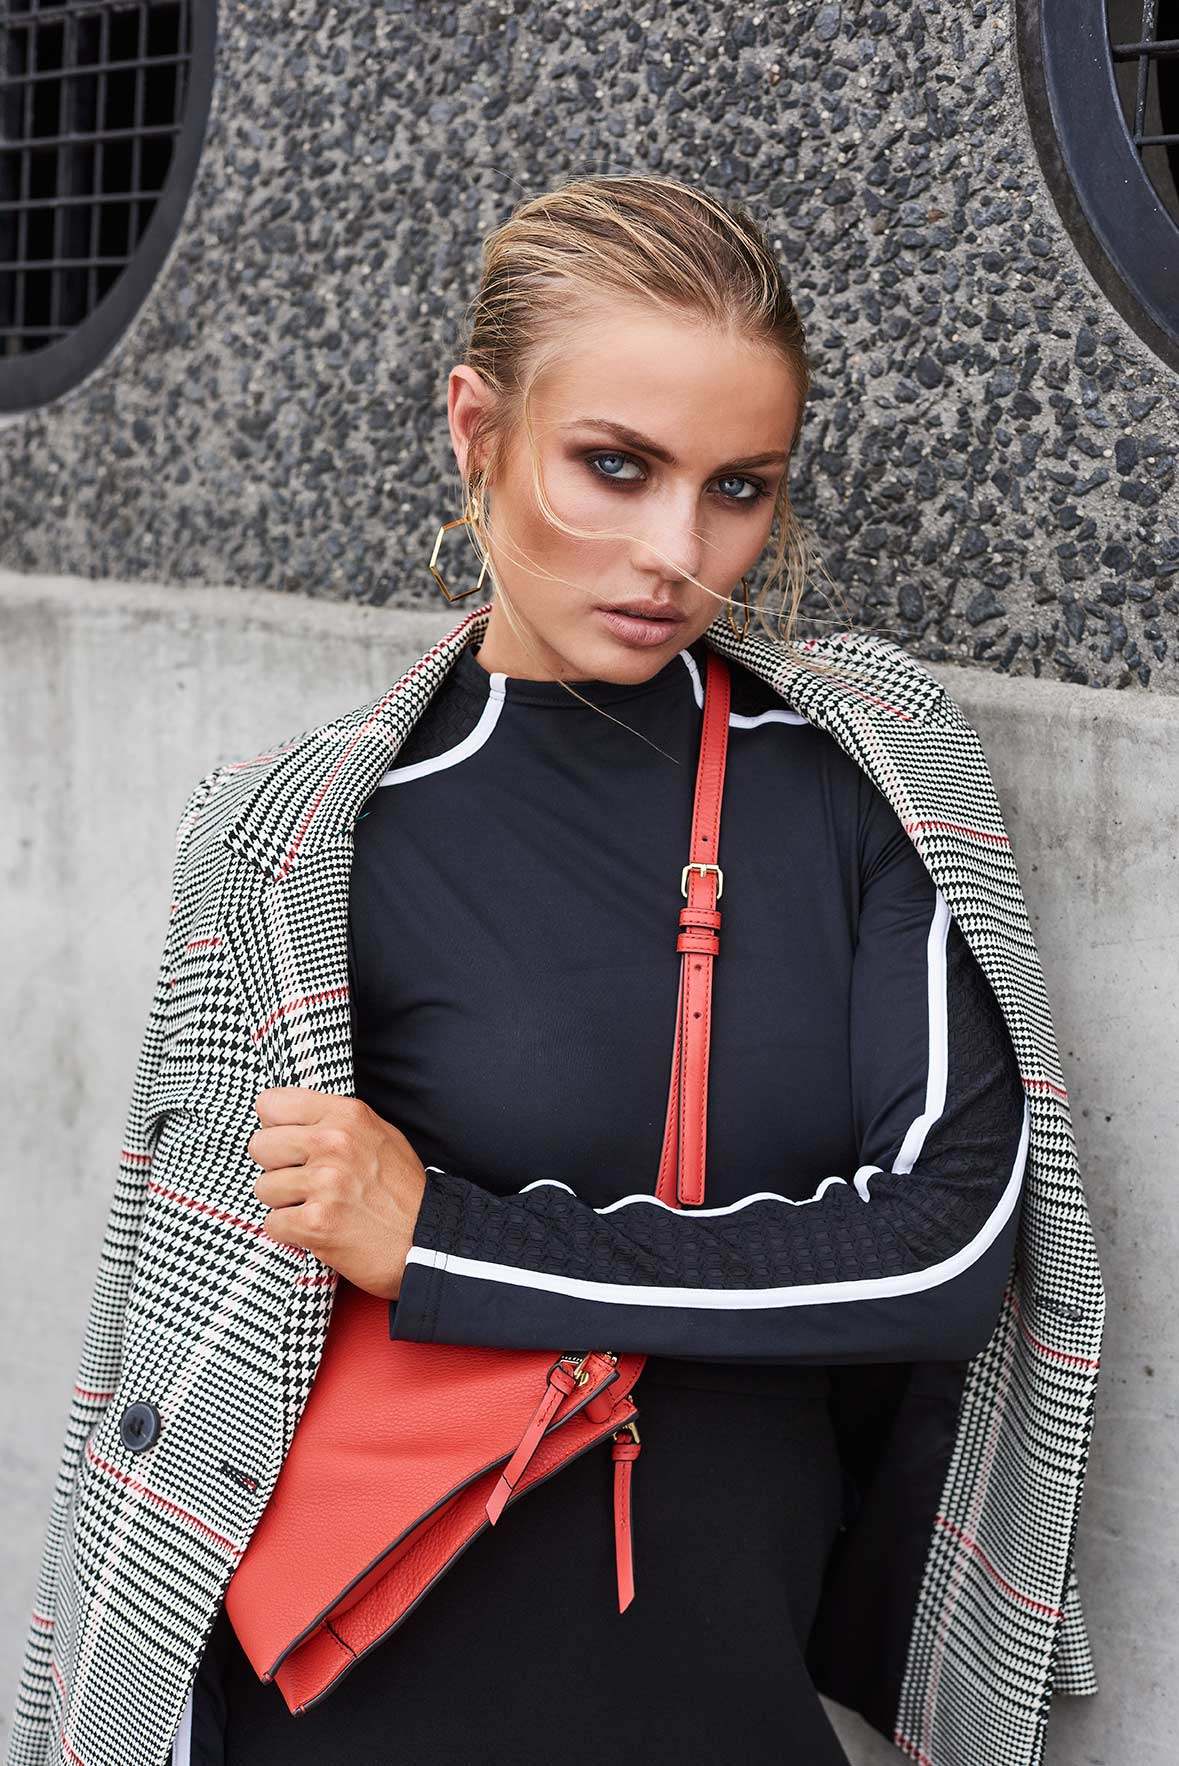 Elyse Knowles Sportluxe Editorial